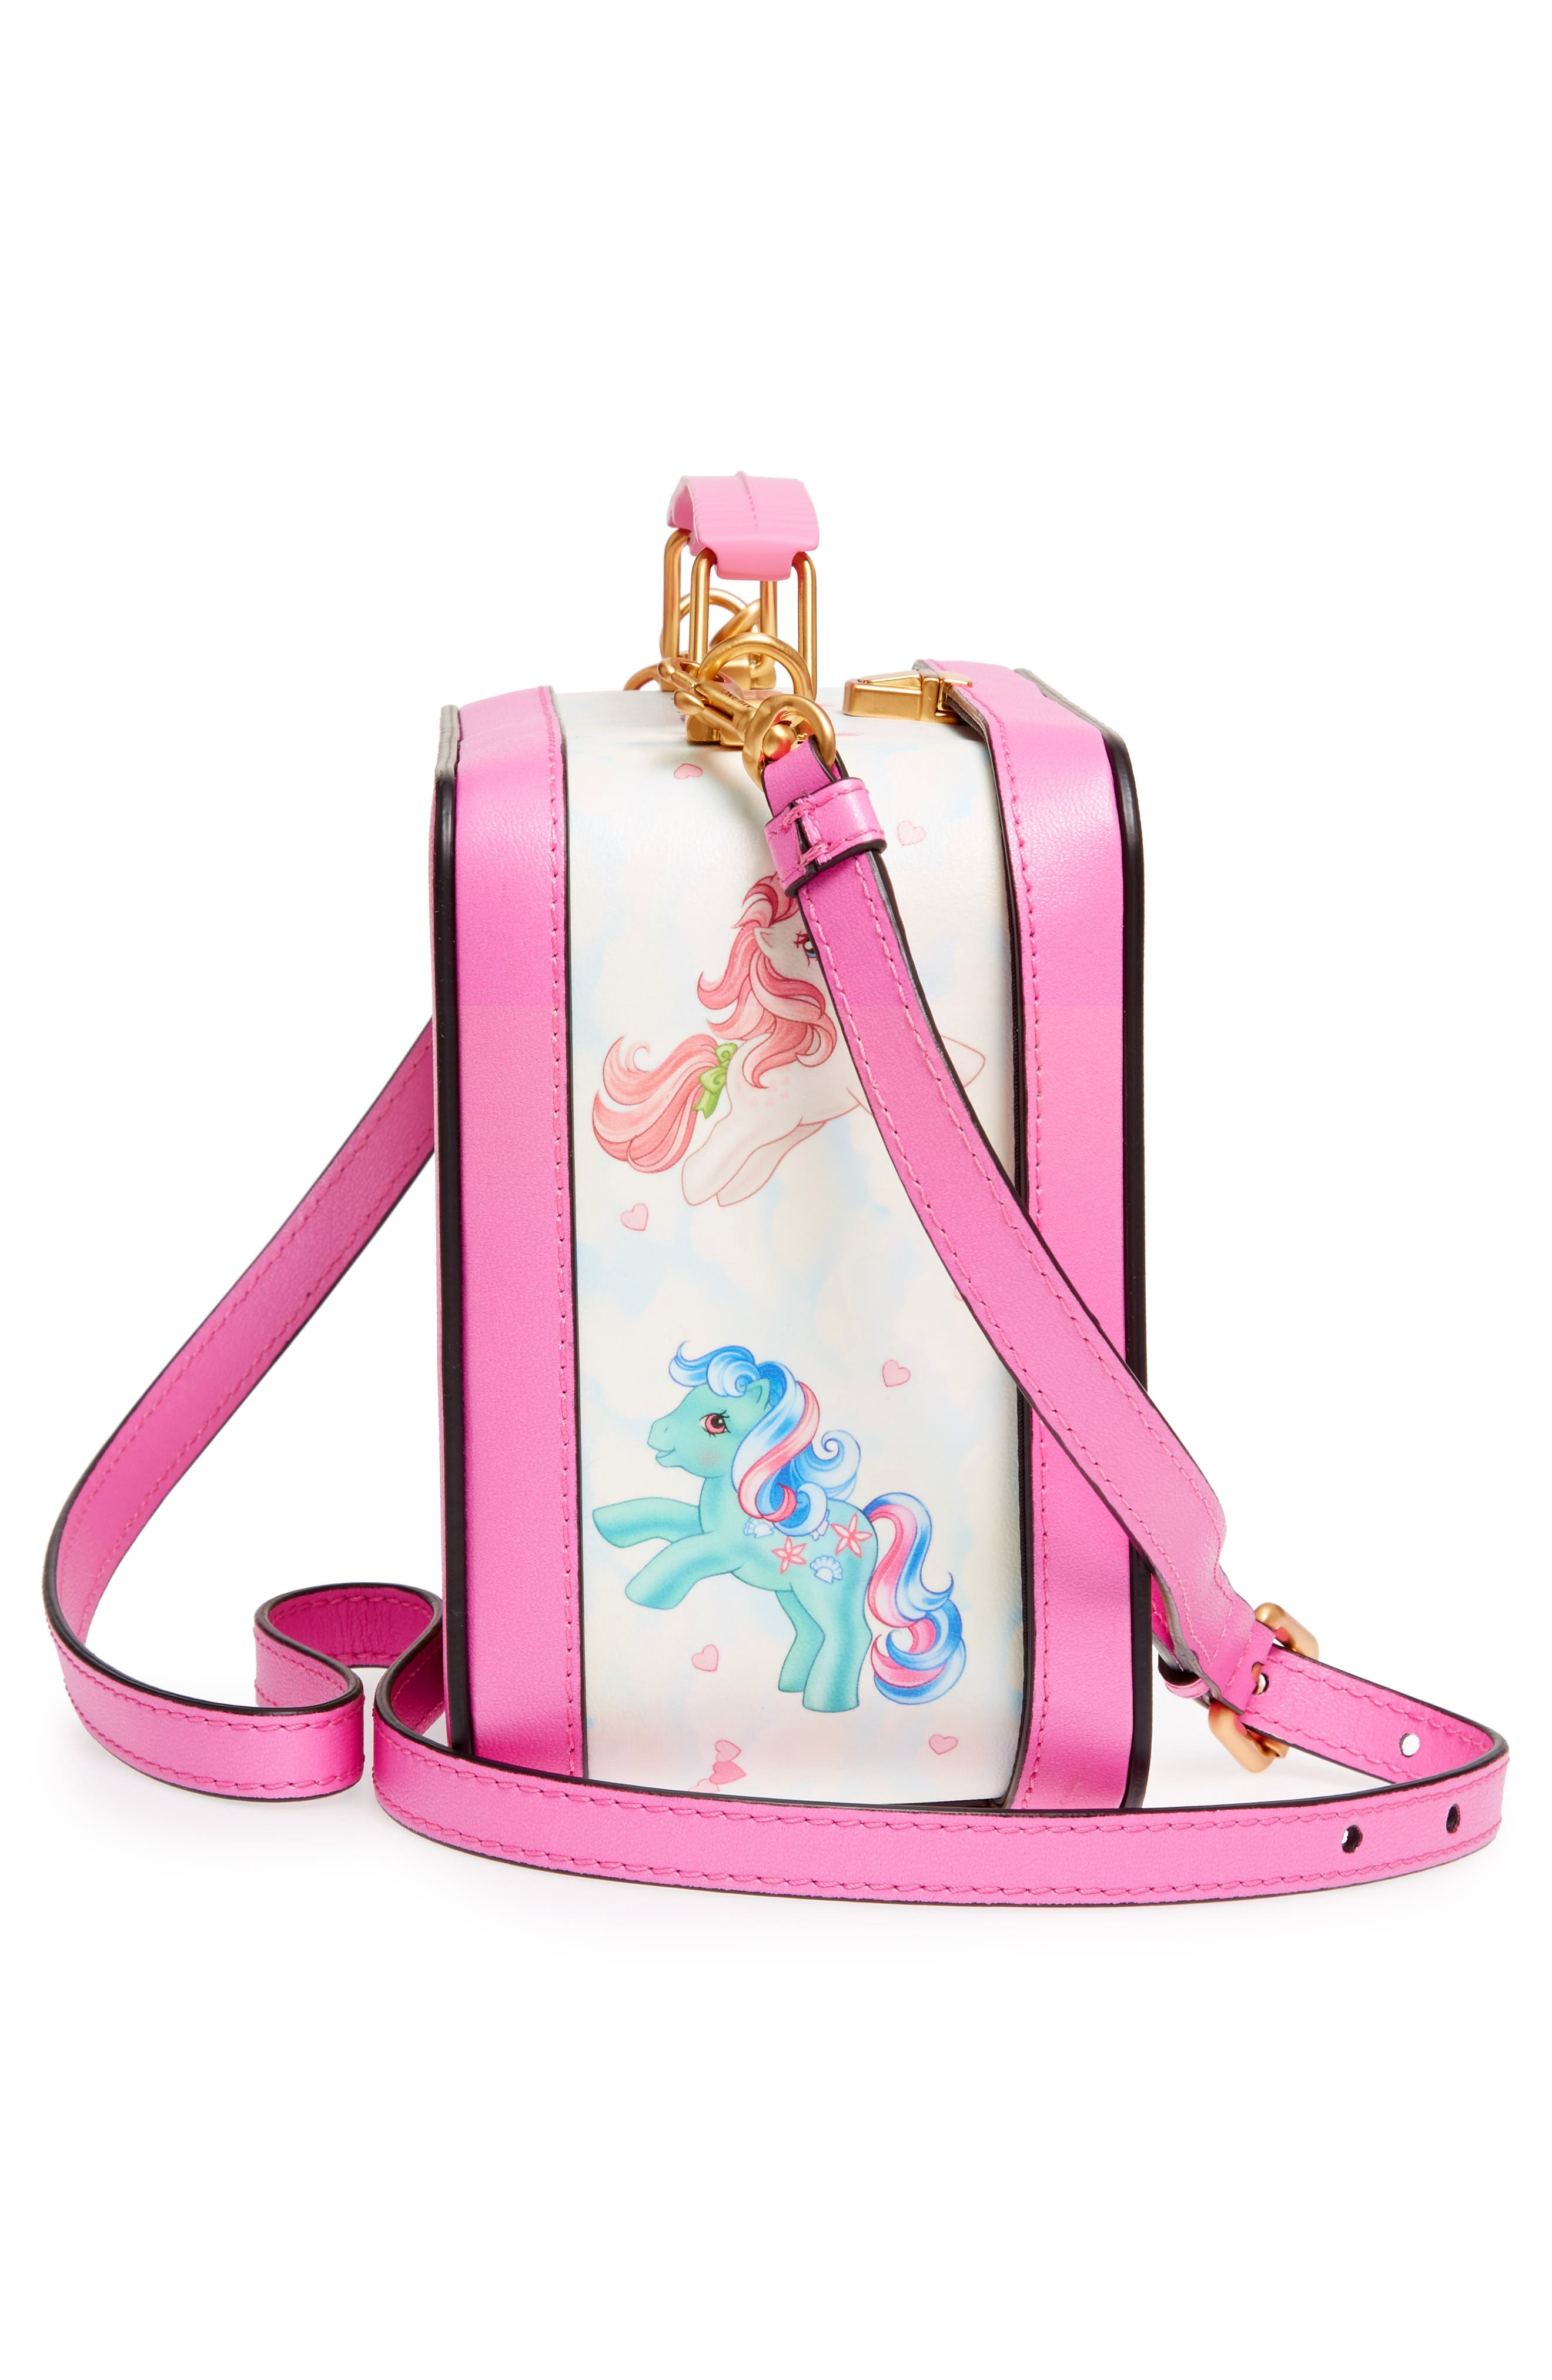 x My Little Pony Leather Lunch Box,                             Alternate thumbnail 5, color,                             650